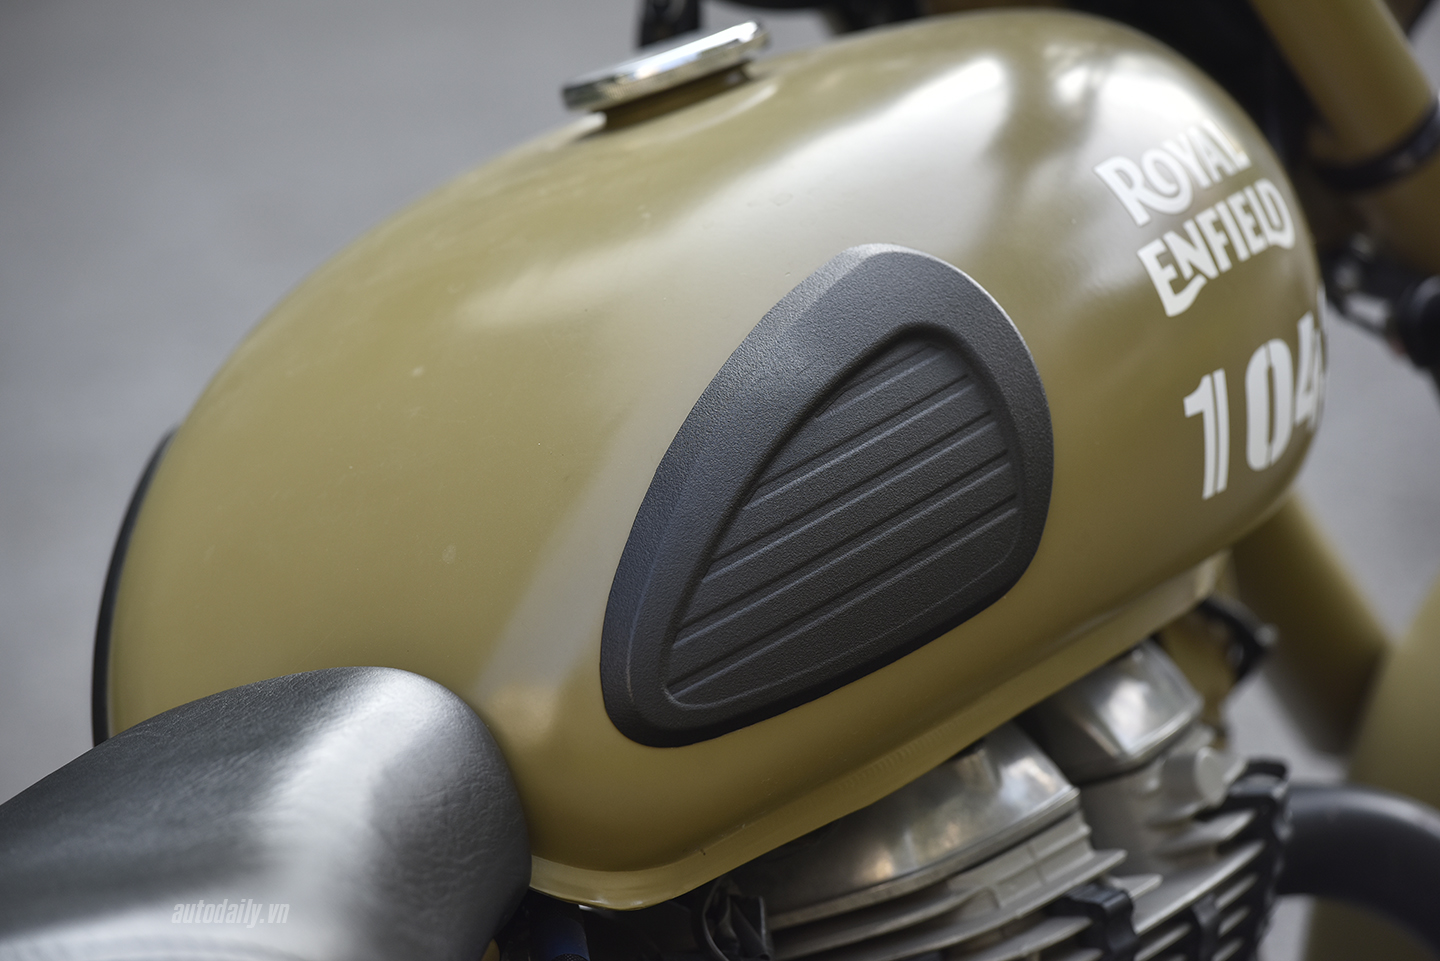 royal-enfield-dsc8004-copy.jpg